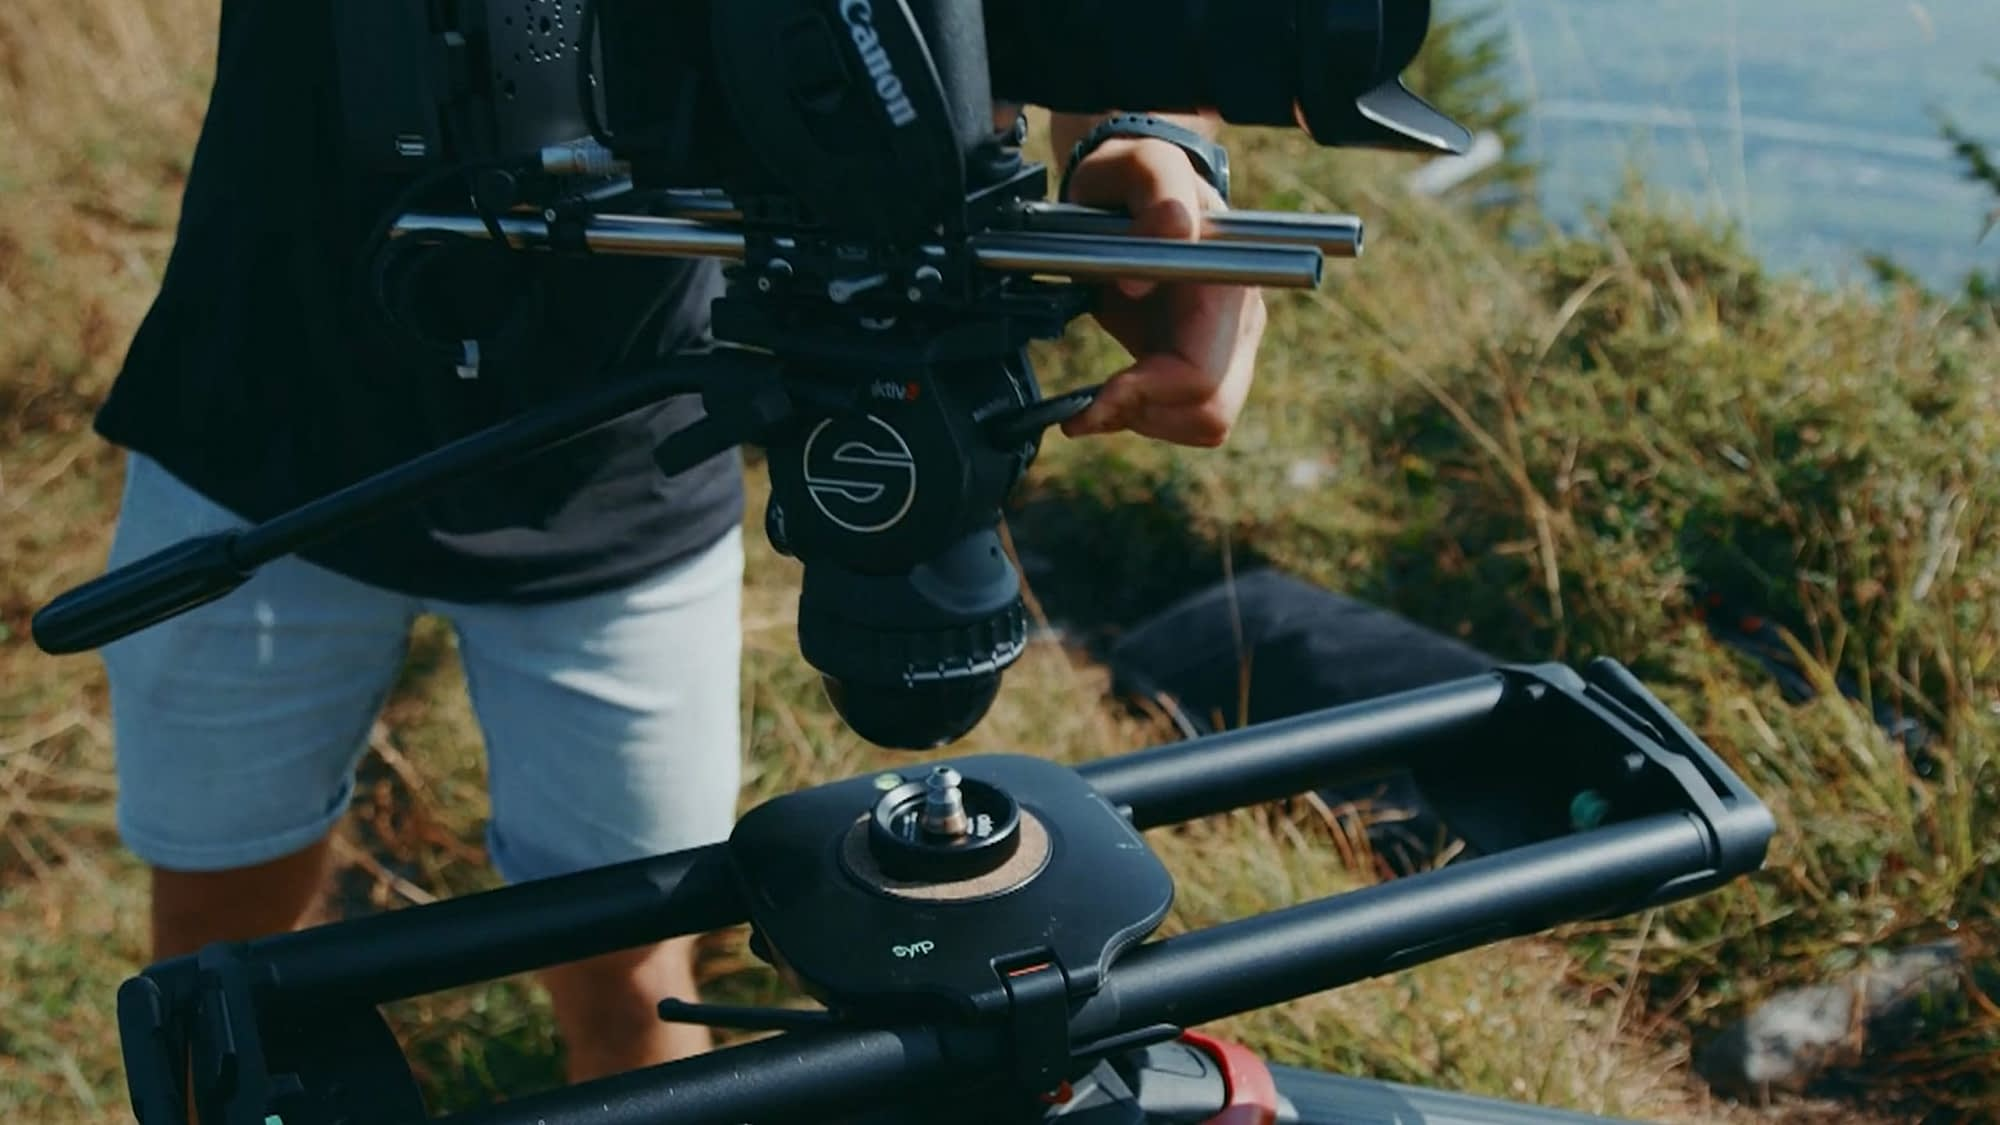 Sachtler Aktiv and Syrp Slider